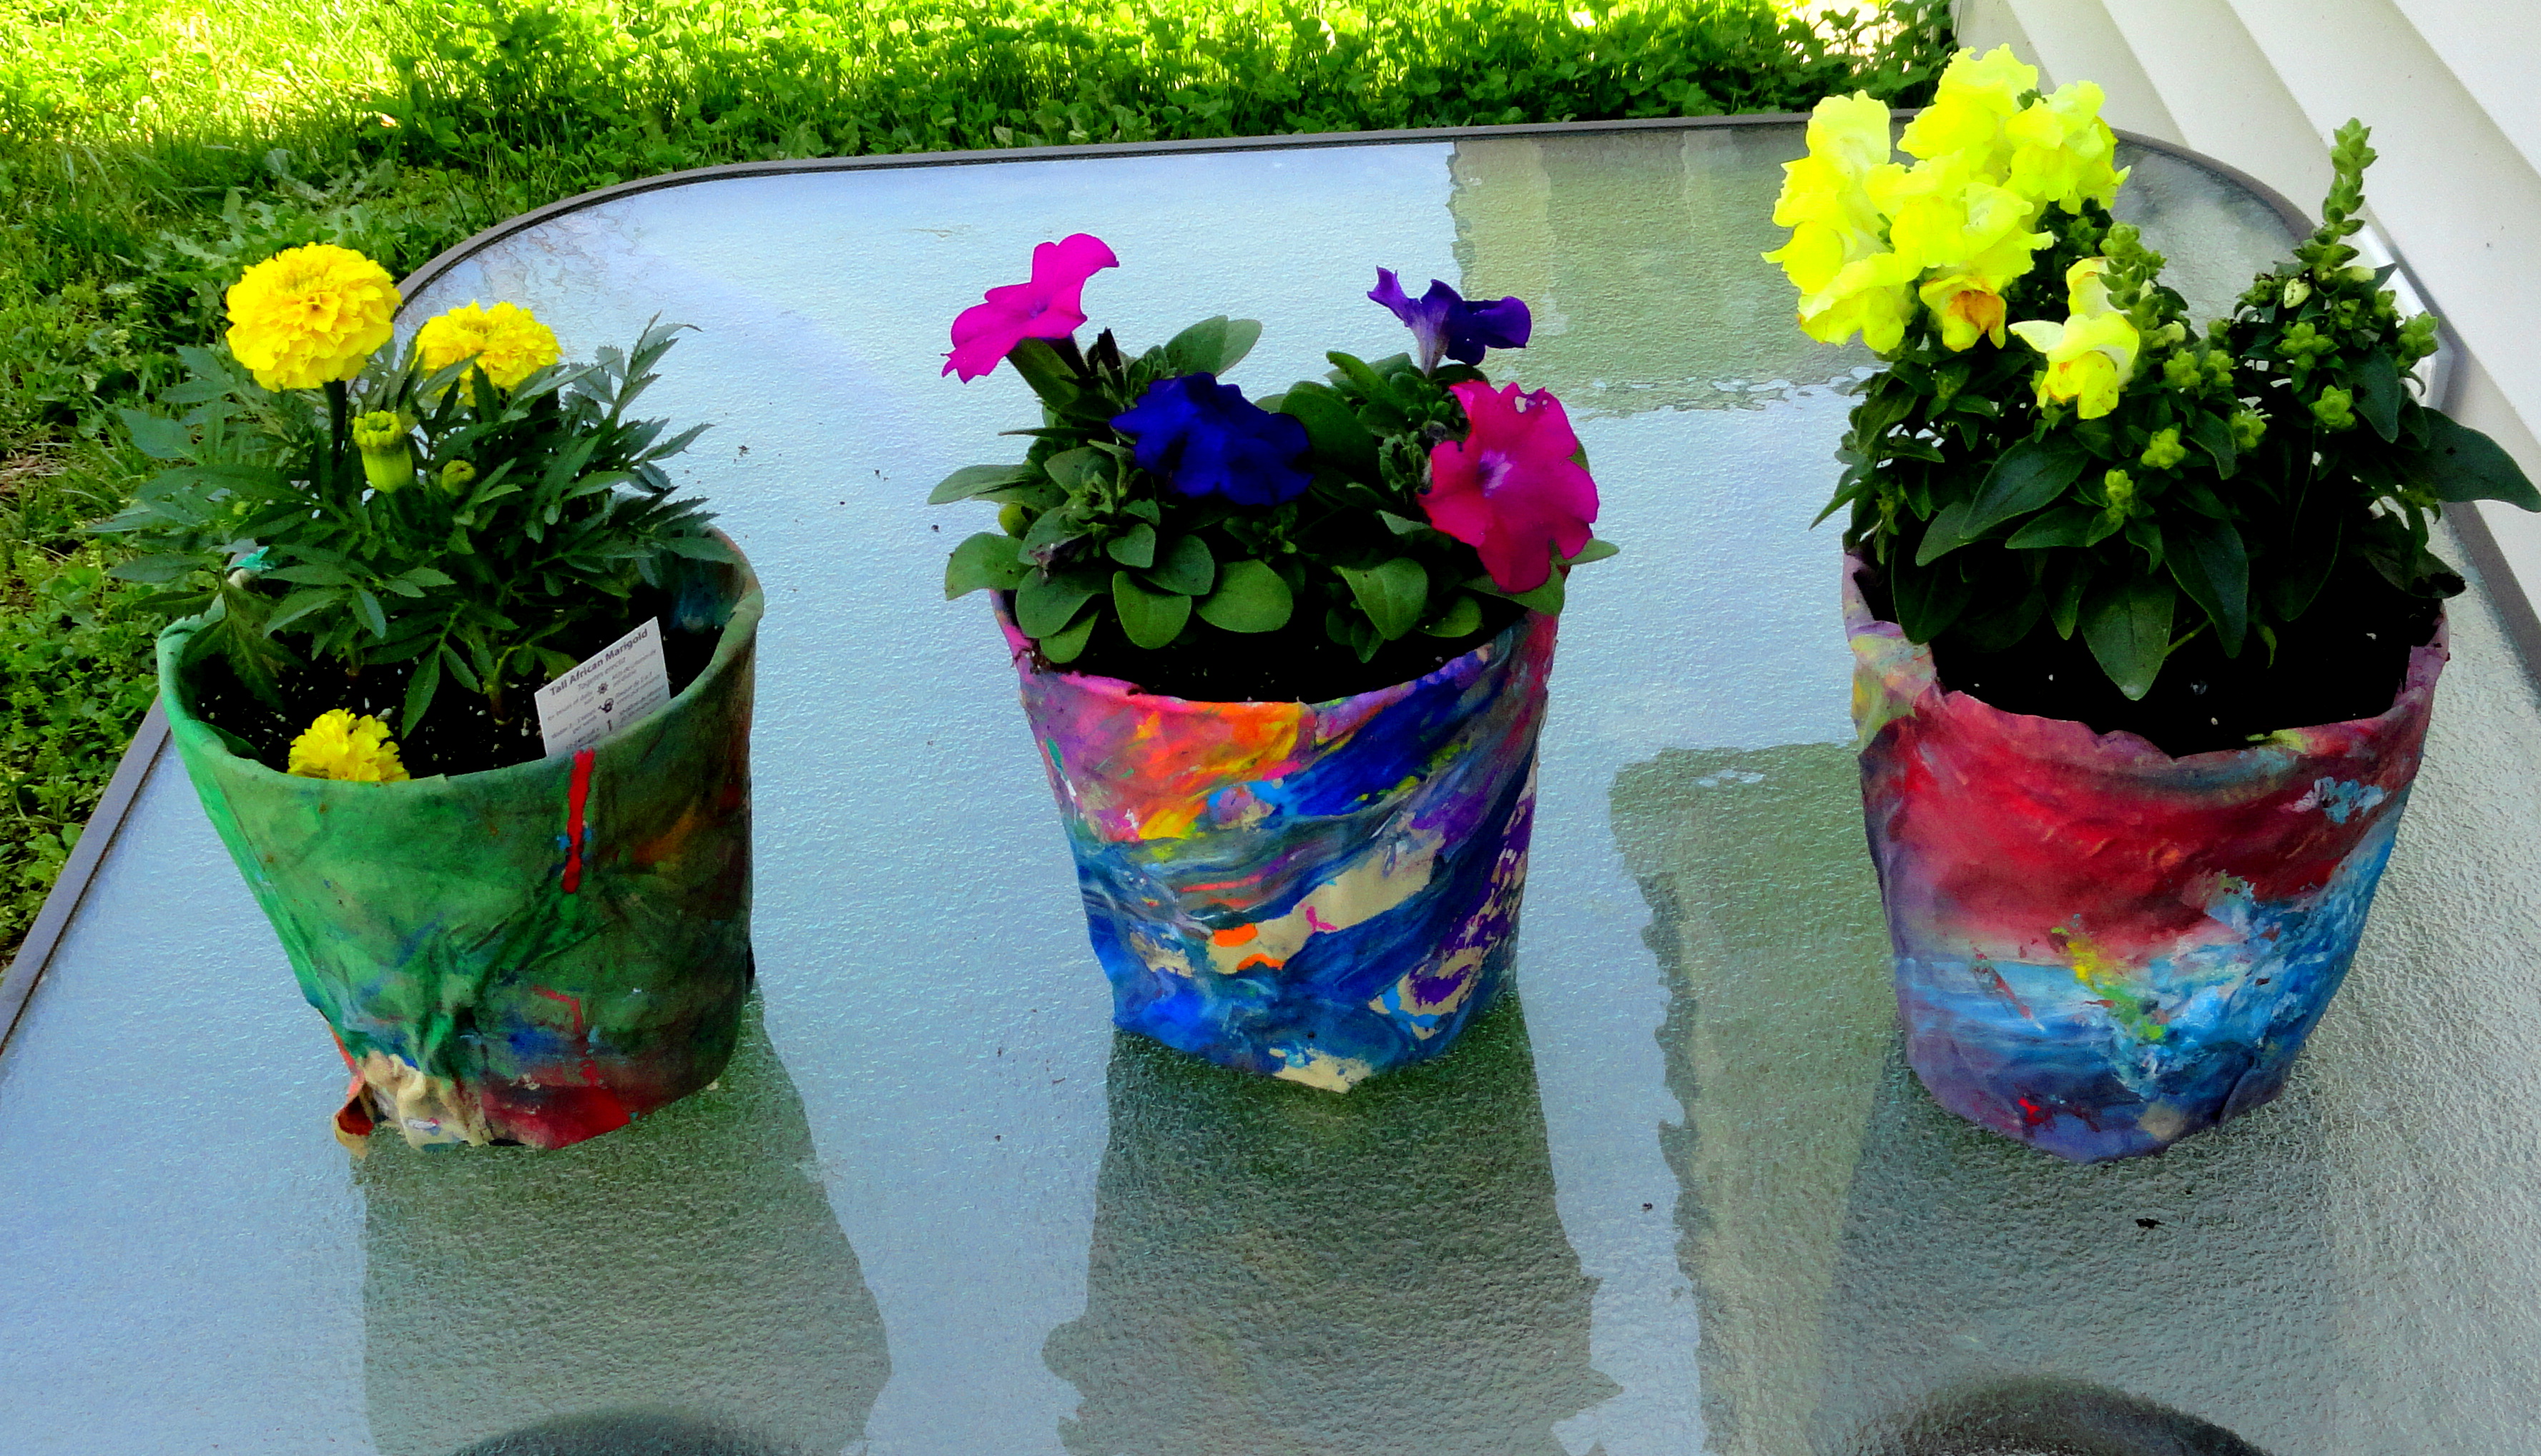 White Flower Pots For Sale April Showers Bring May Flowers Diy Flower Pots The